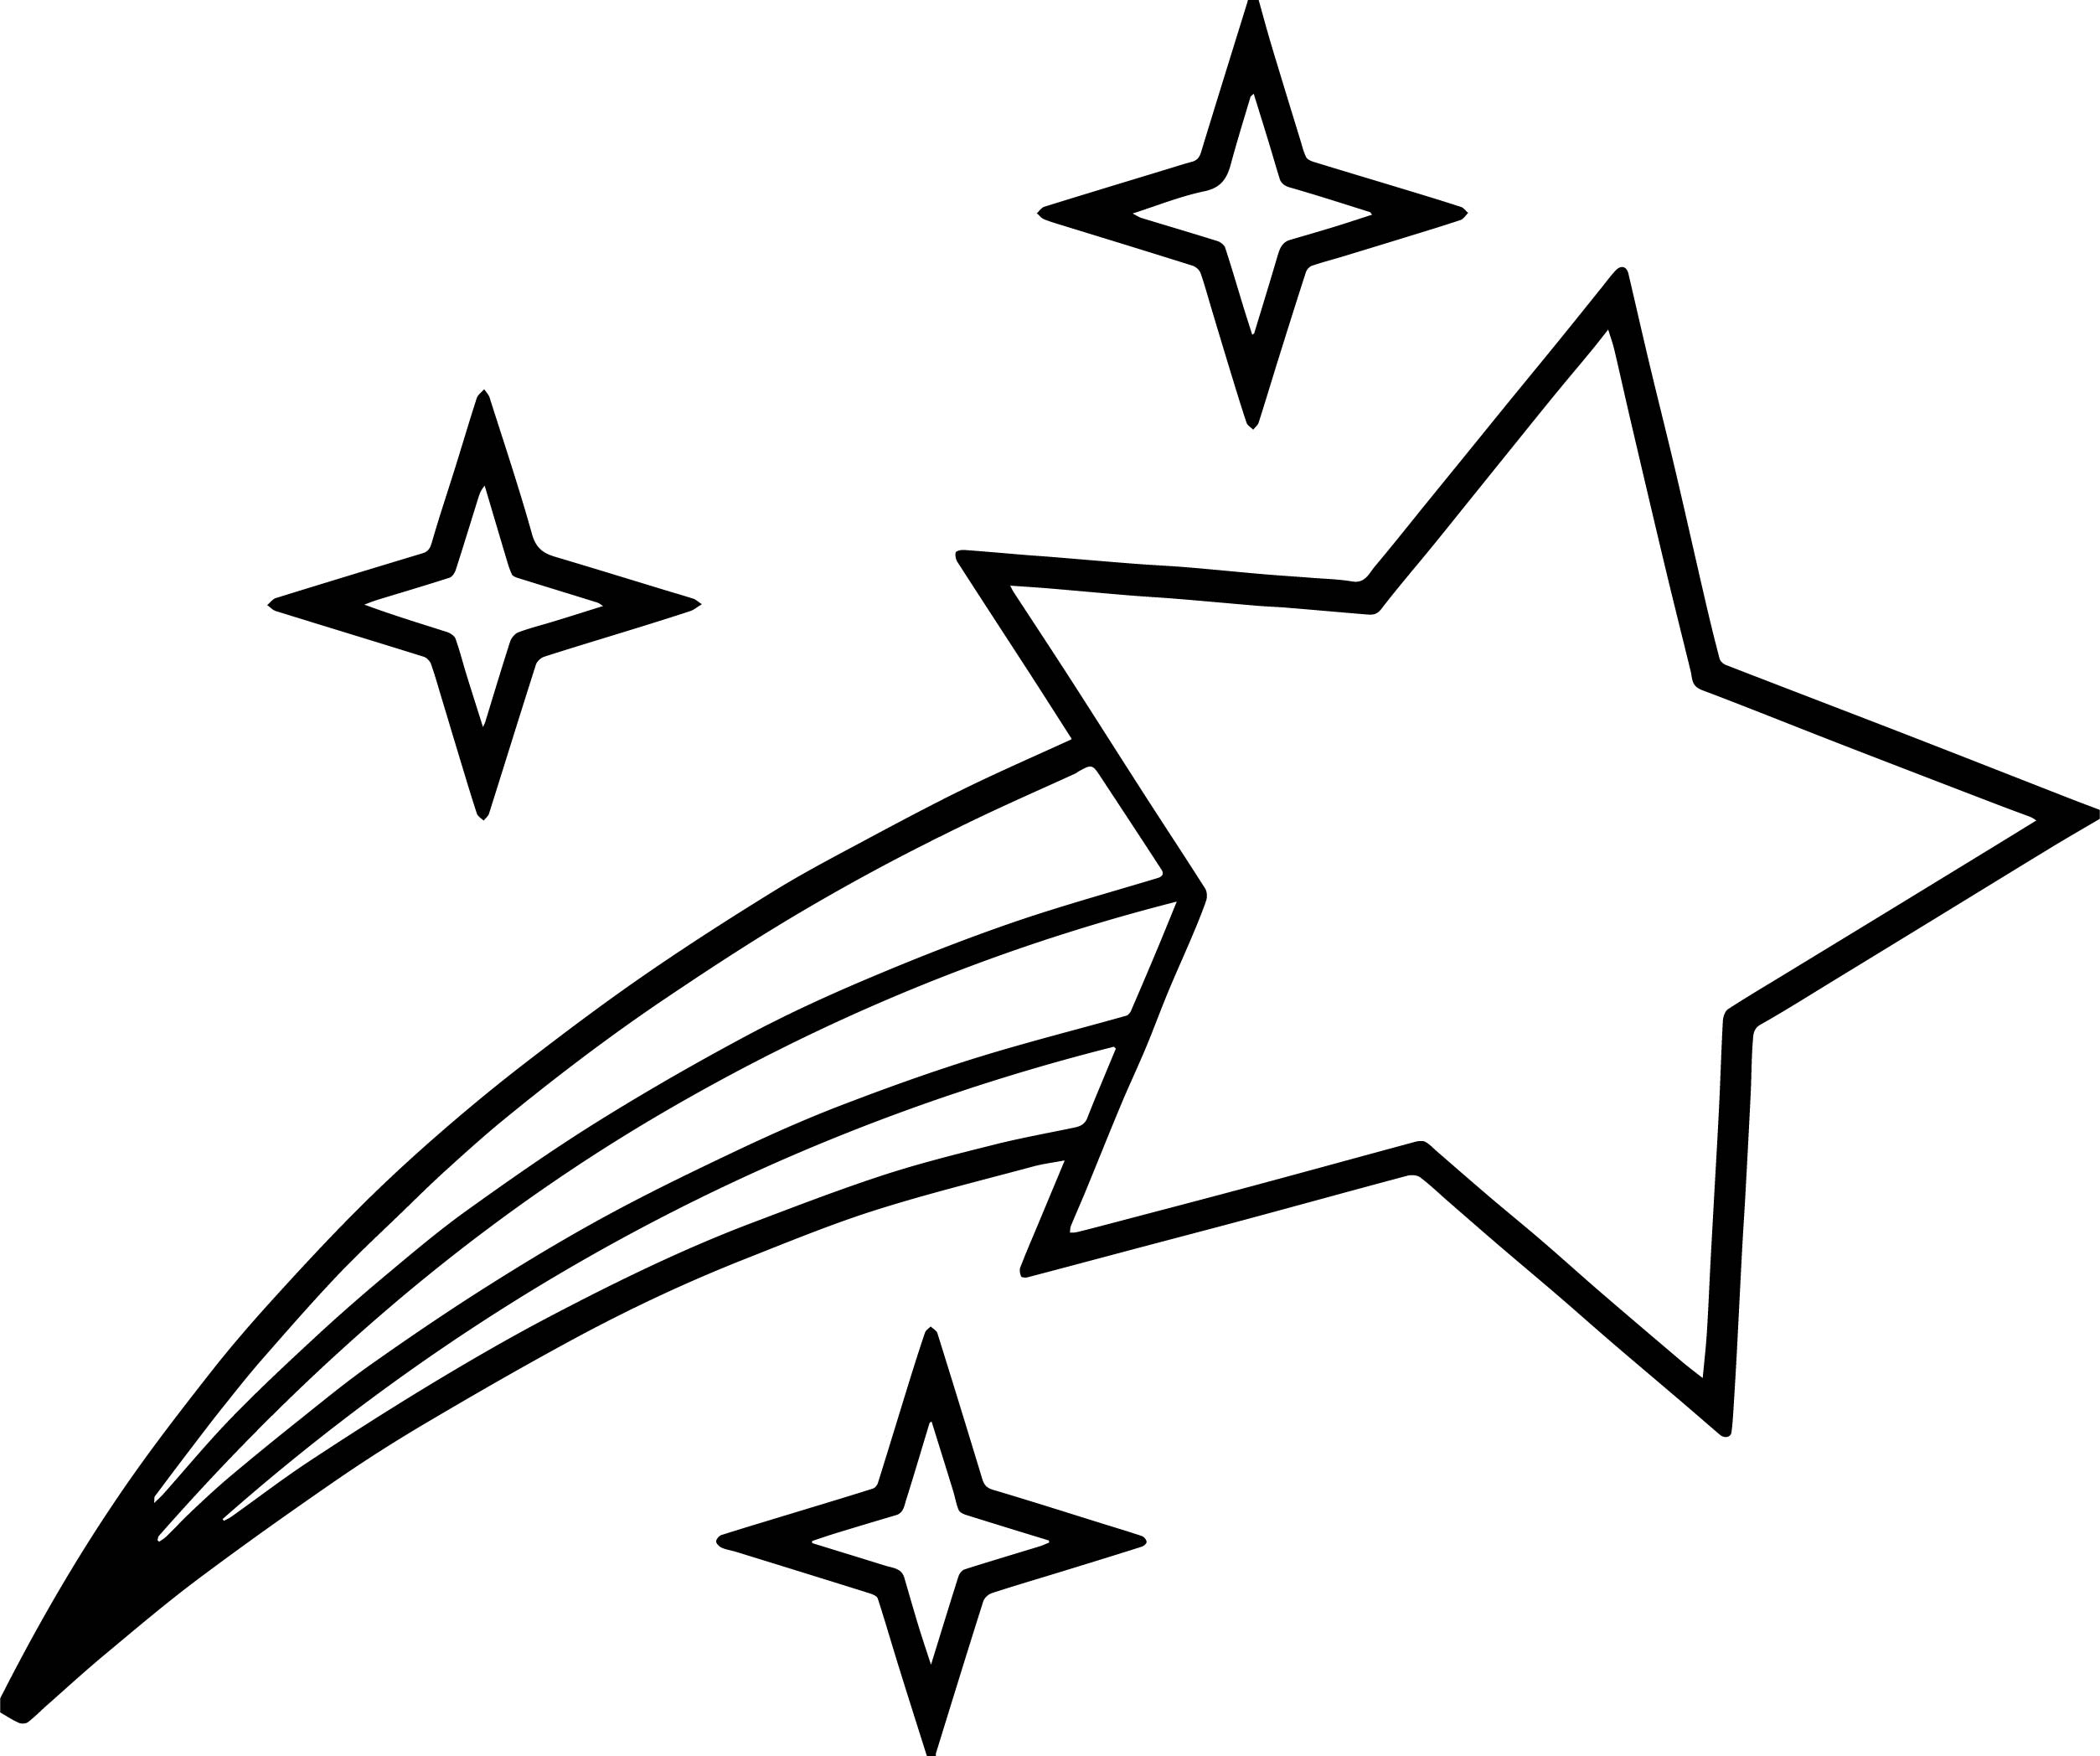 big small stars coloring page - Big And Small Coloring Pages